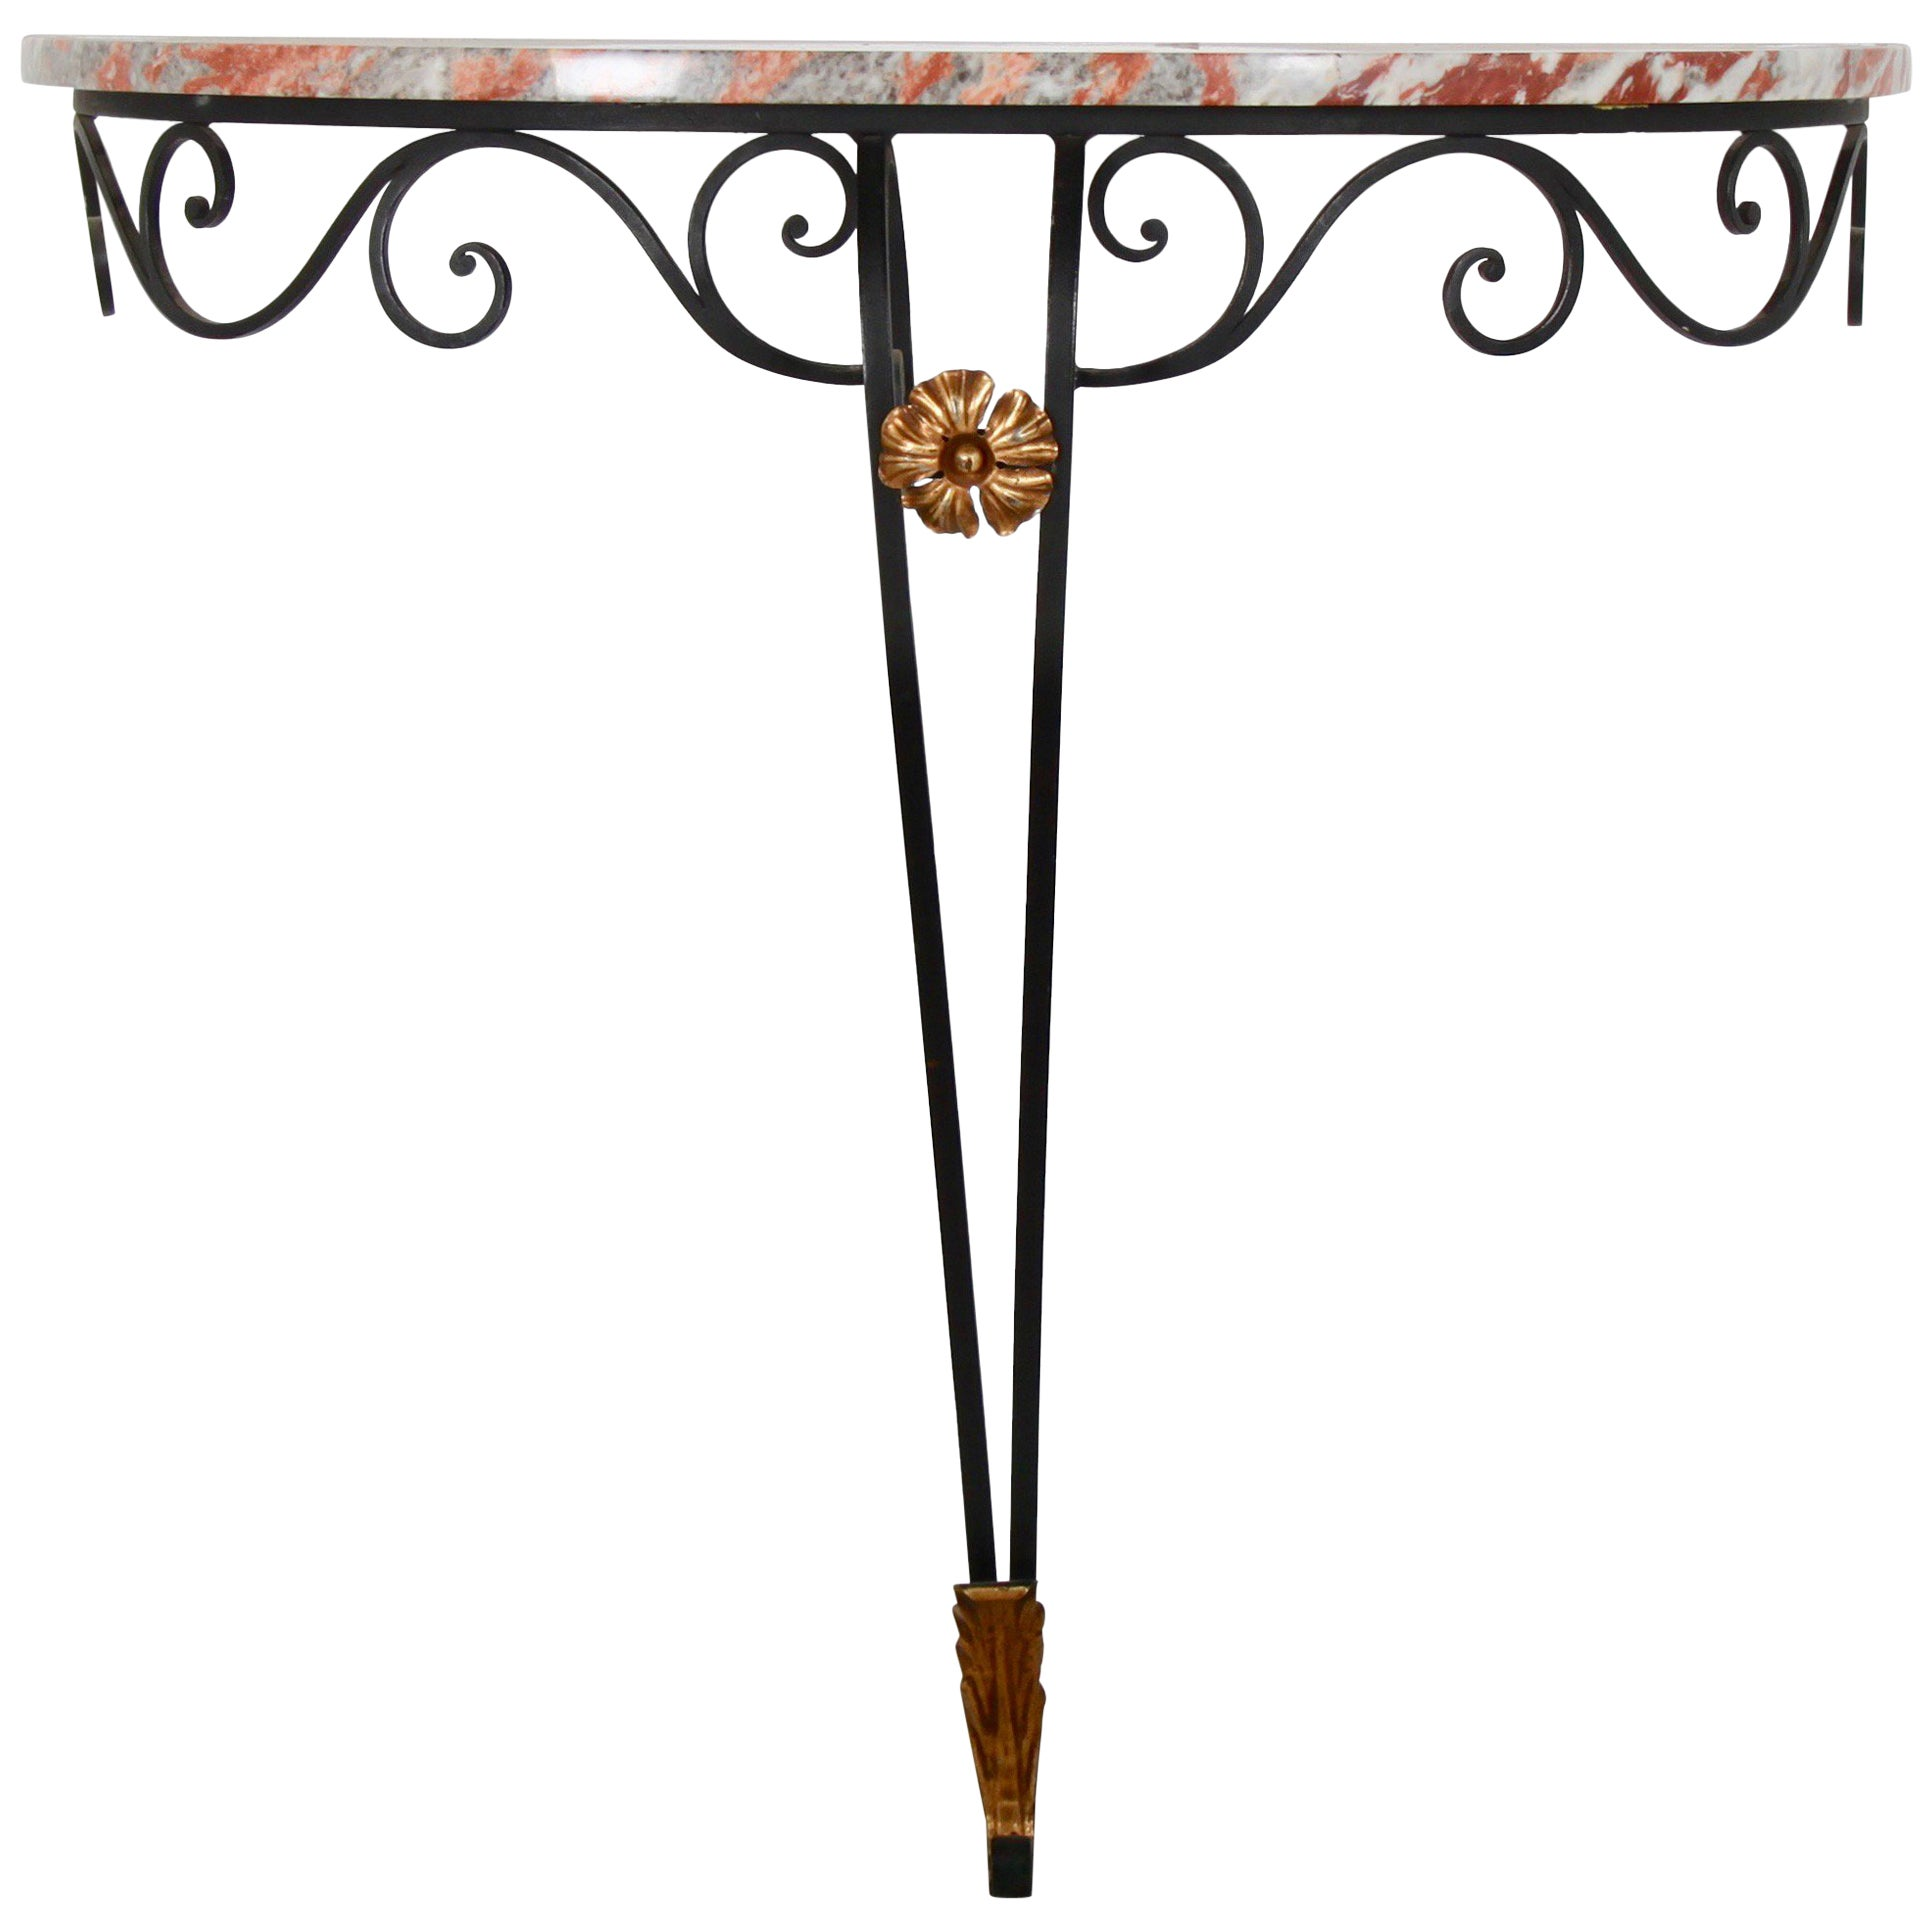 French Vintage Wrought Iron Console